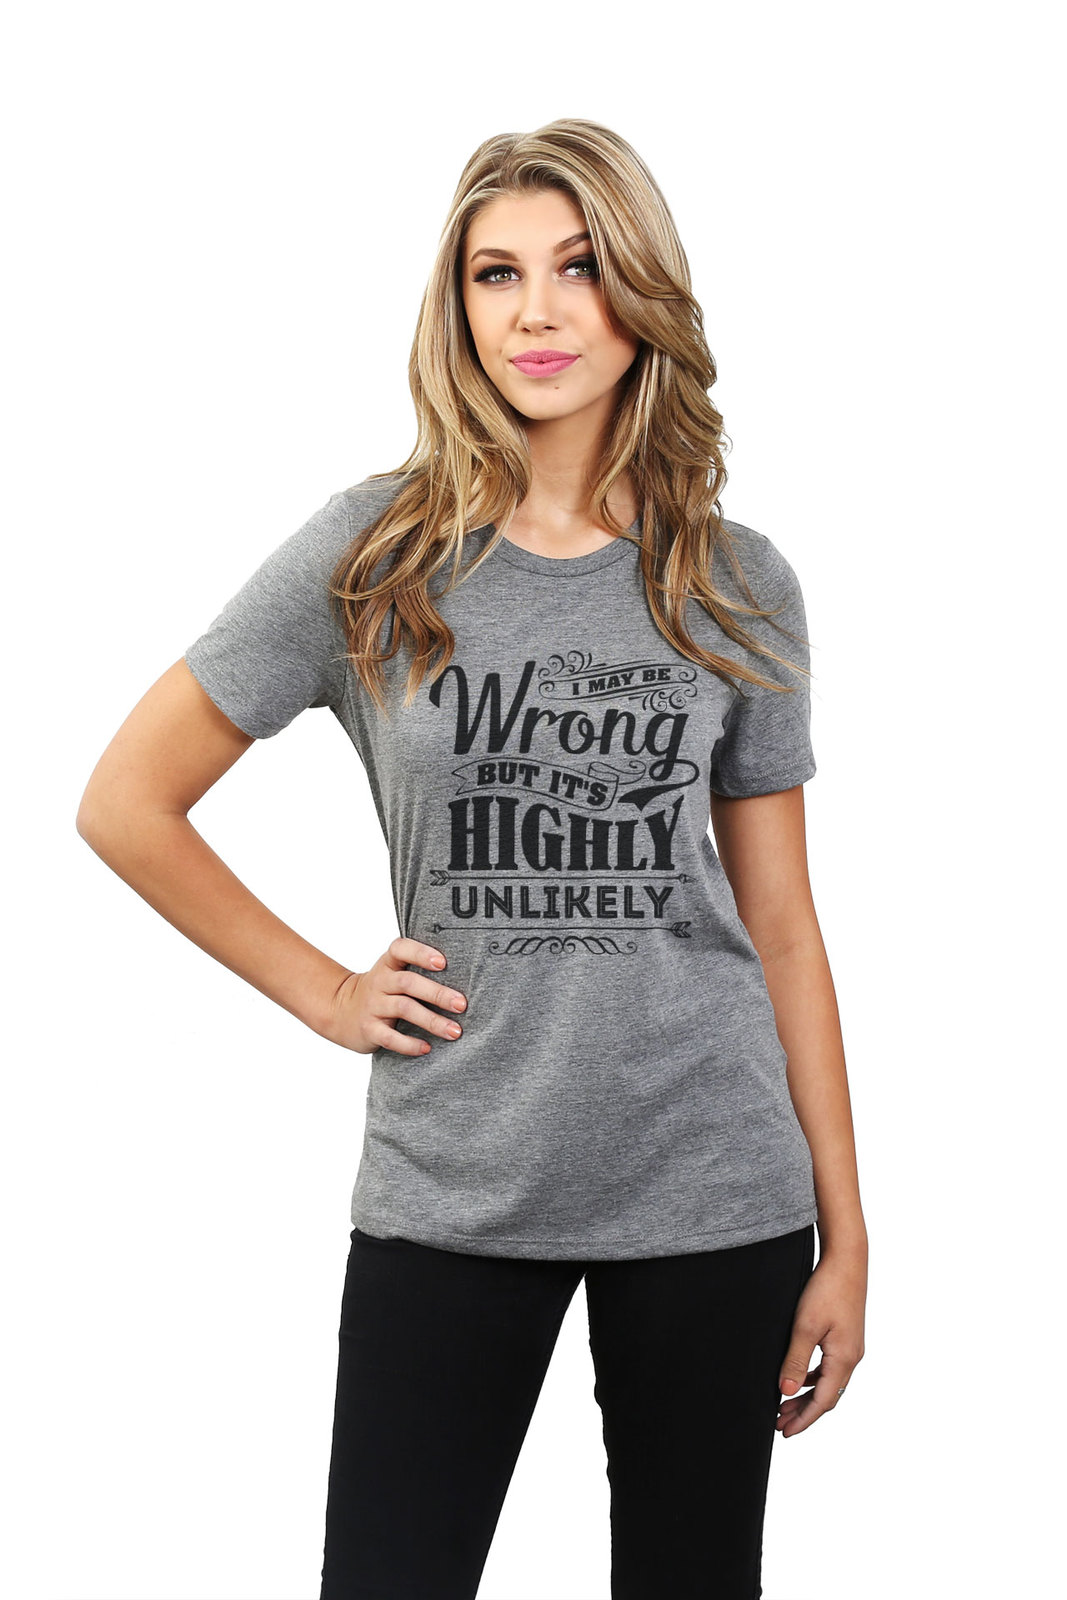 Thread Tank Highly Unlikely Women's Relaxed T-Shirt Tee Heather Grey